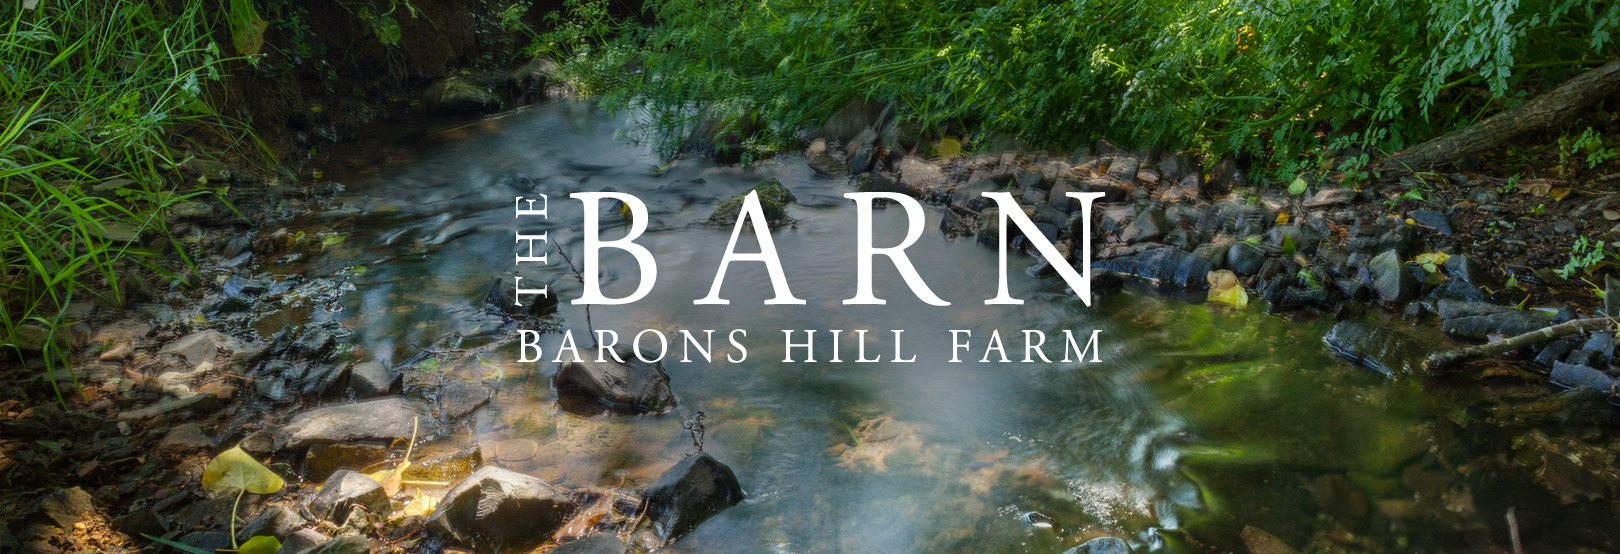 barons-hill-farm